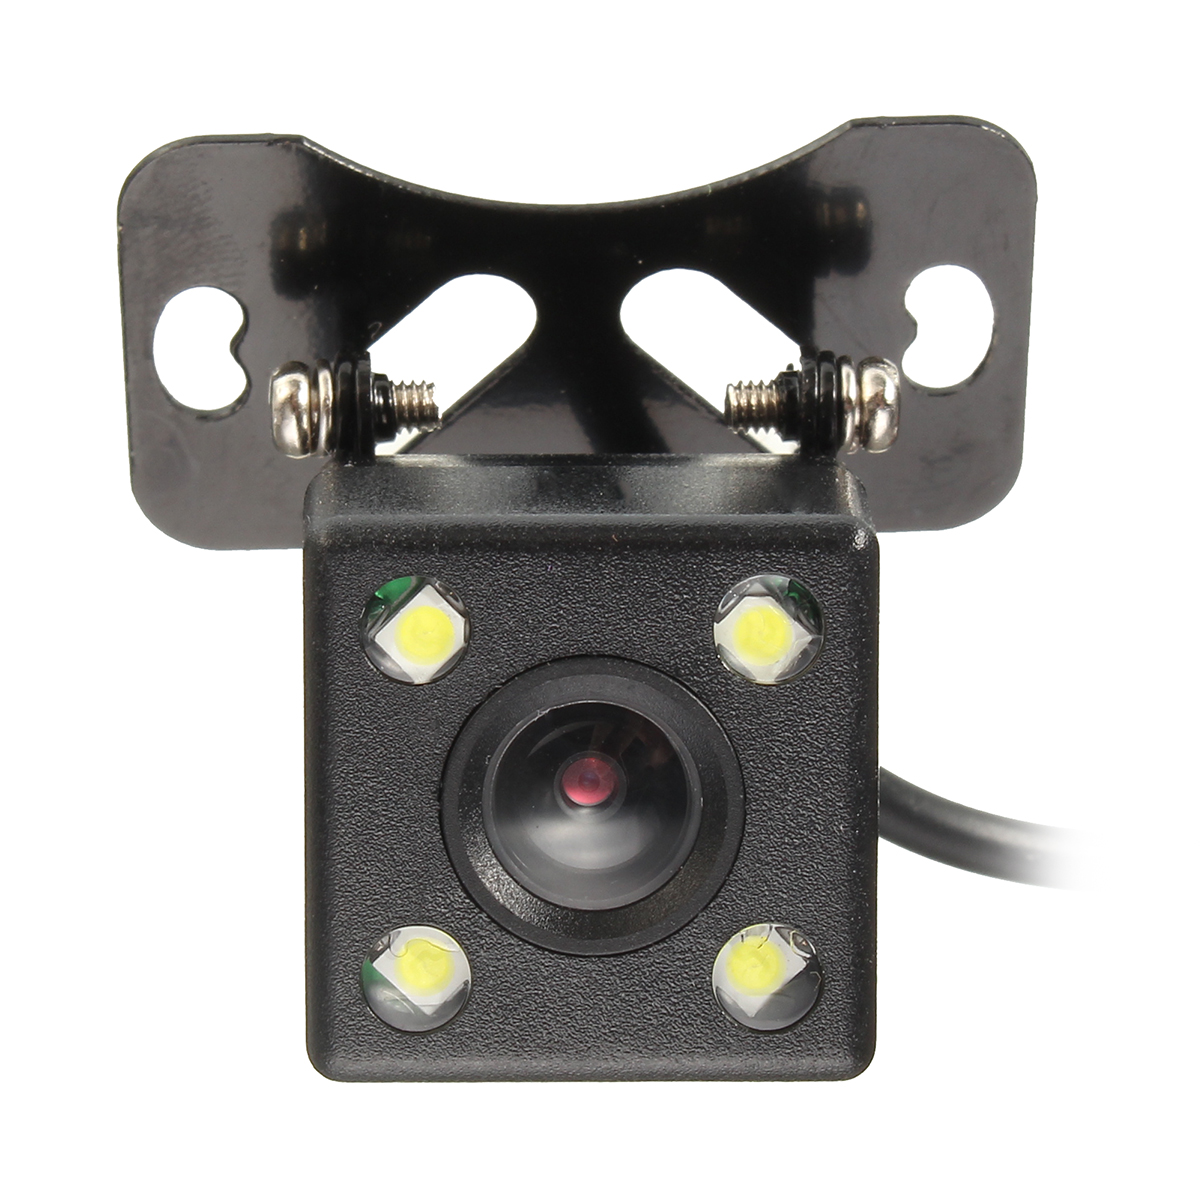 170 Degree Night Vision HD Car Reverse Camera Waterproof Parking Rear View LED Sensor